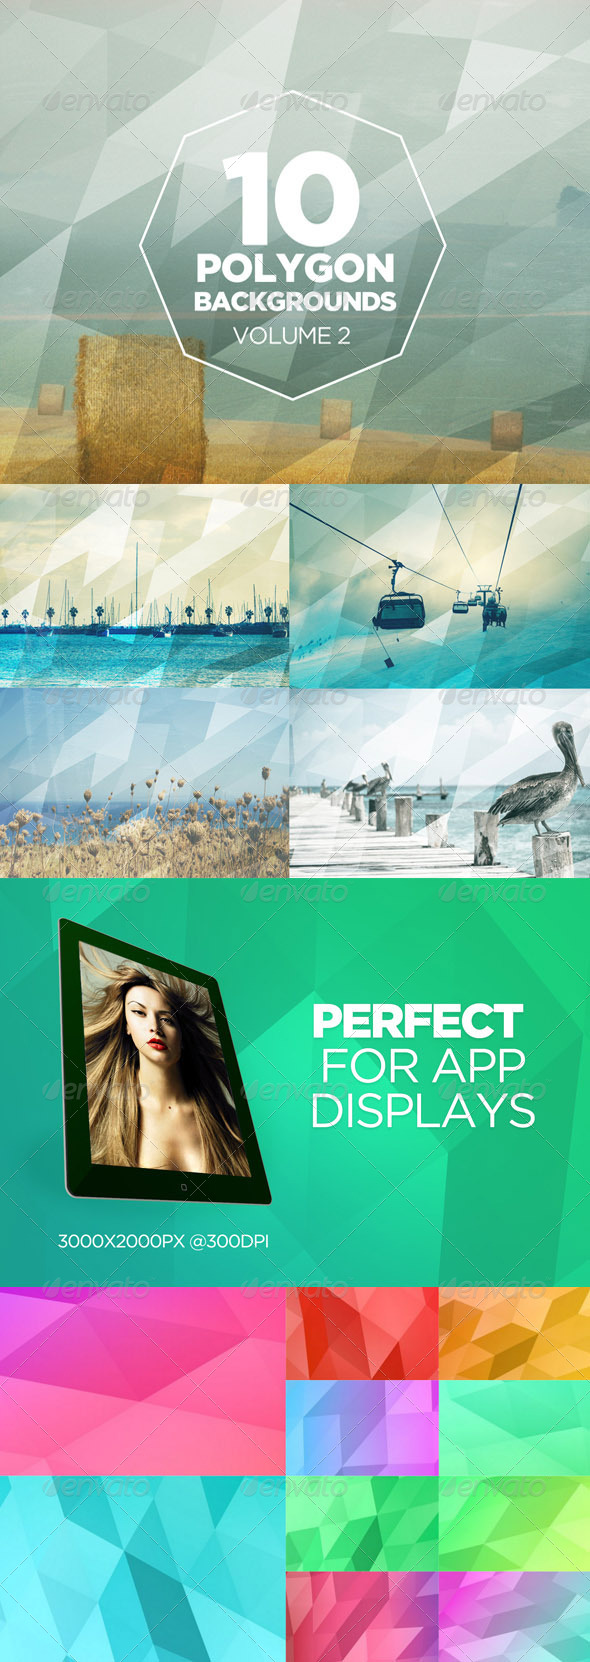 GraphicRiver 10 Polygon Backgrounds Volume 2 7659957